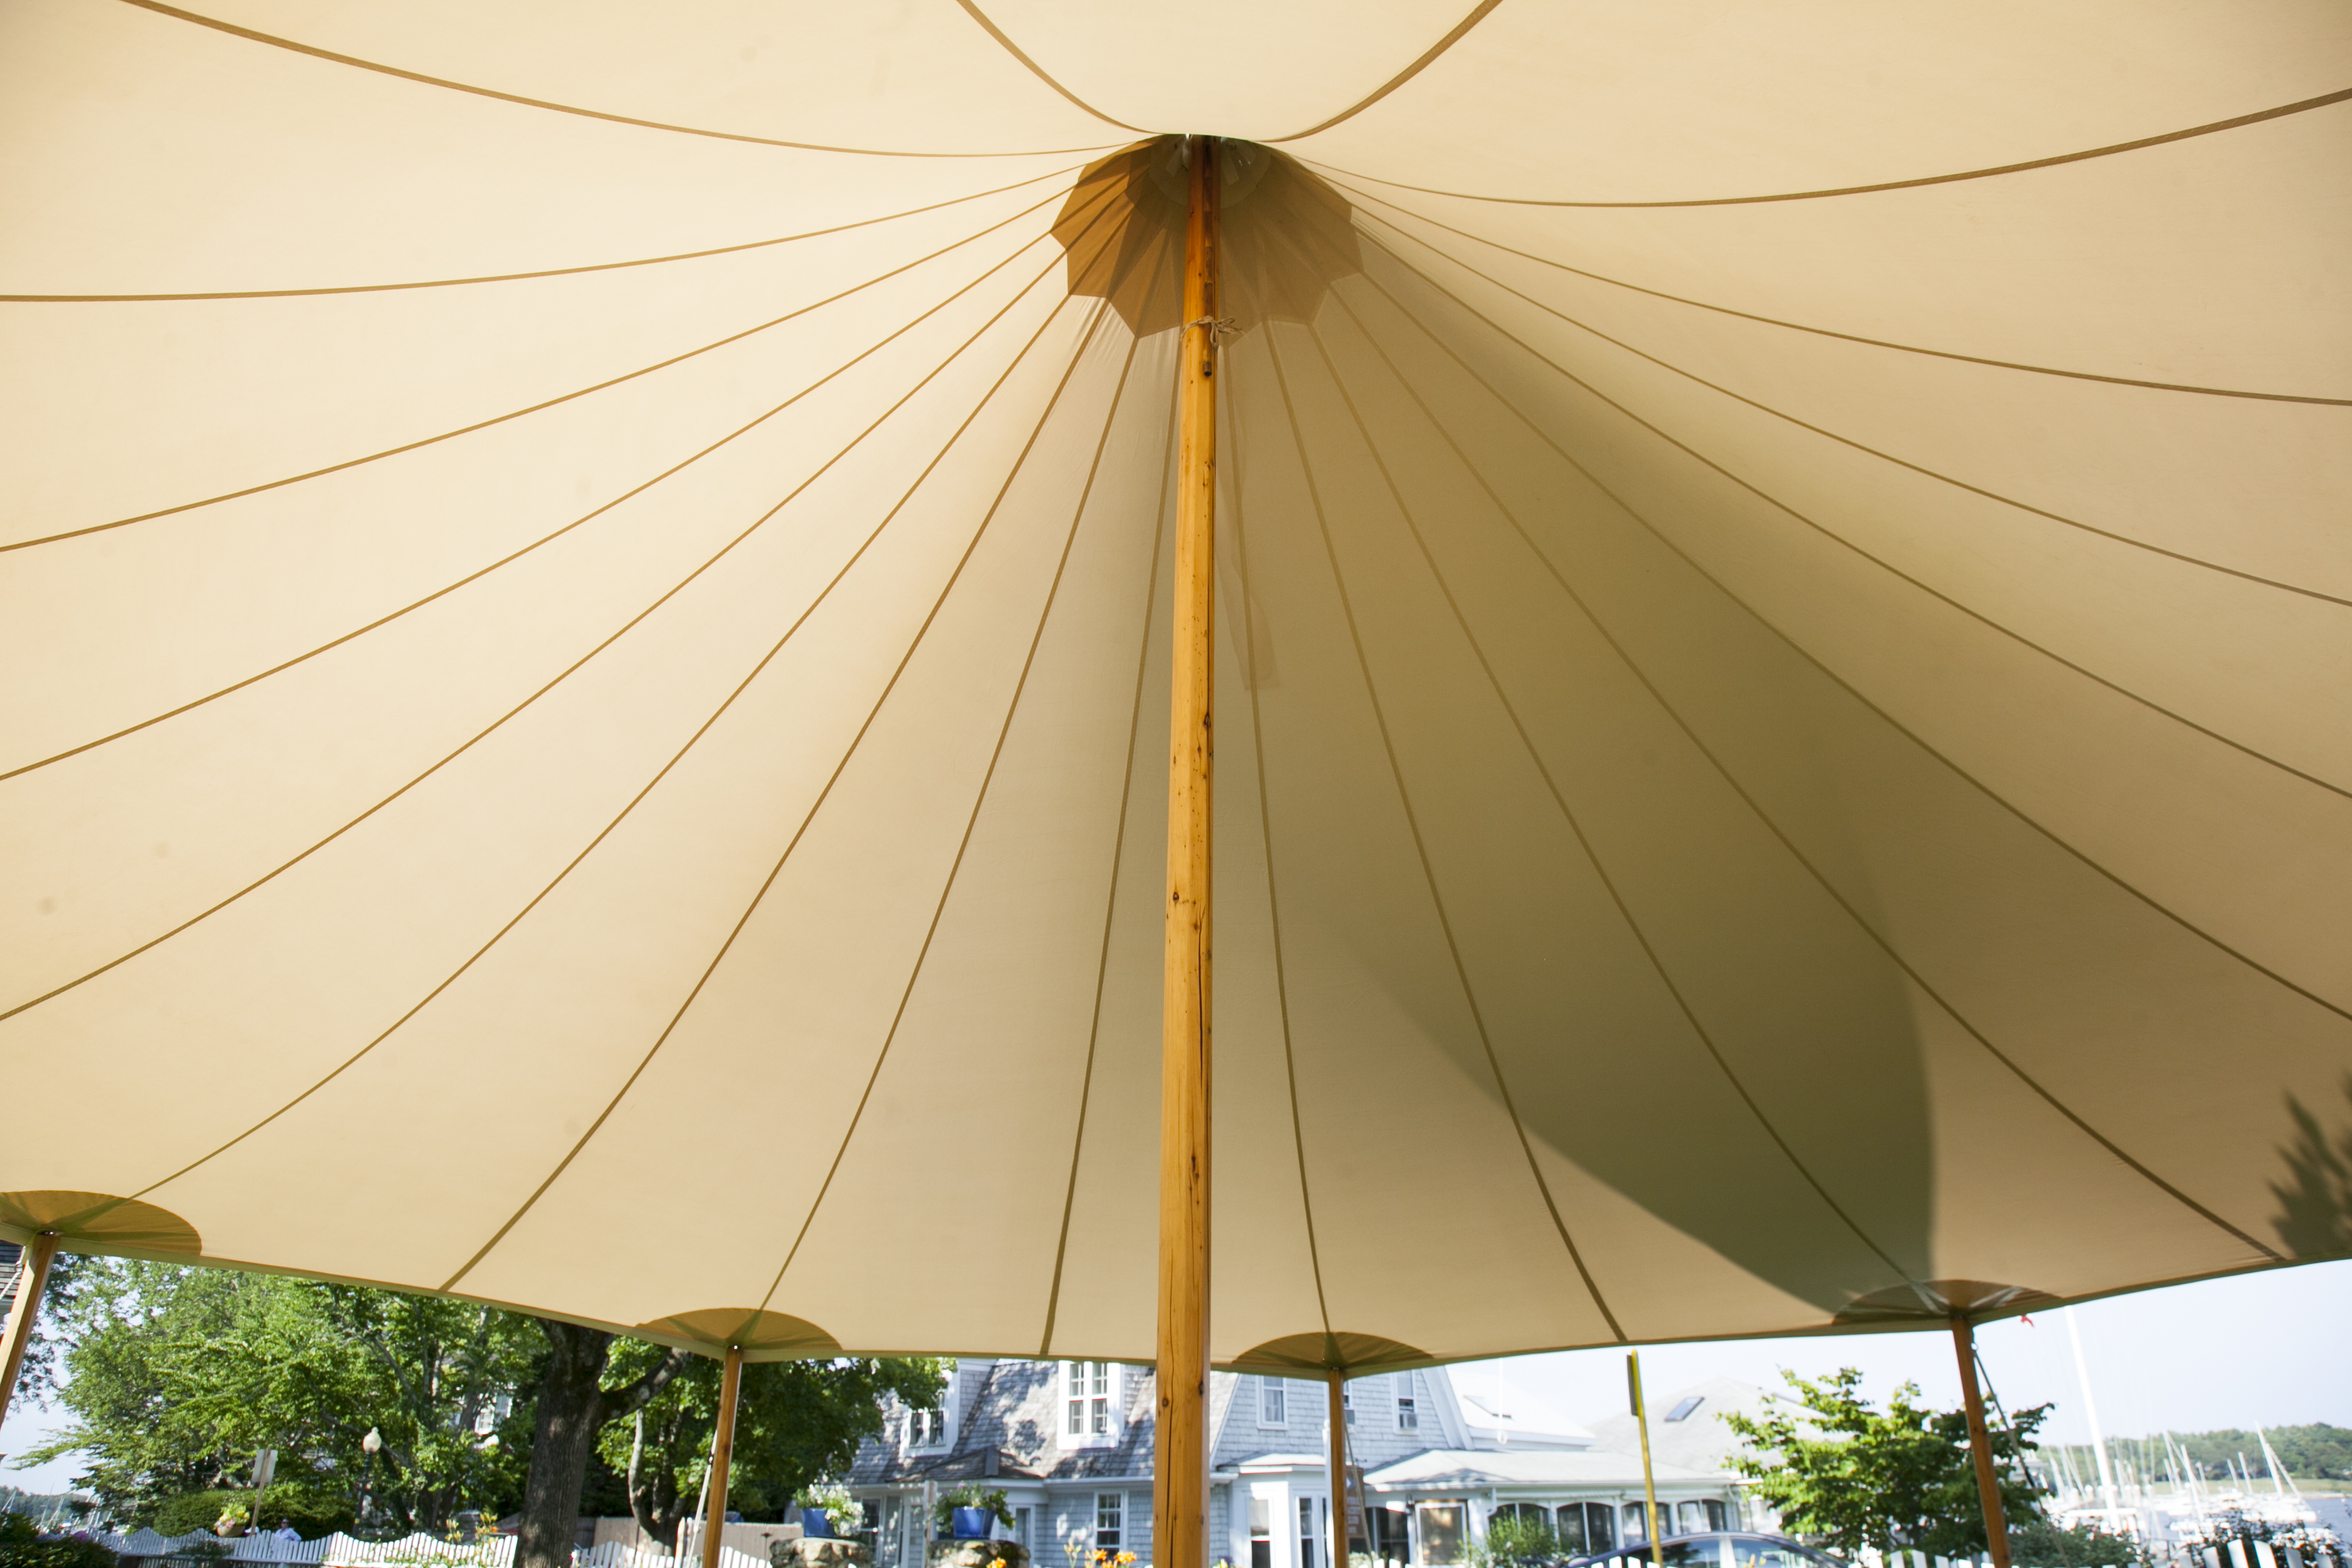 Sperry's nautical heritage is still evident in the sailcloth tent's materials and designs.